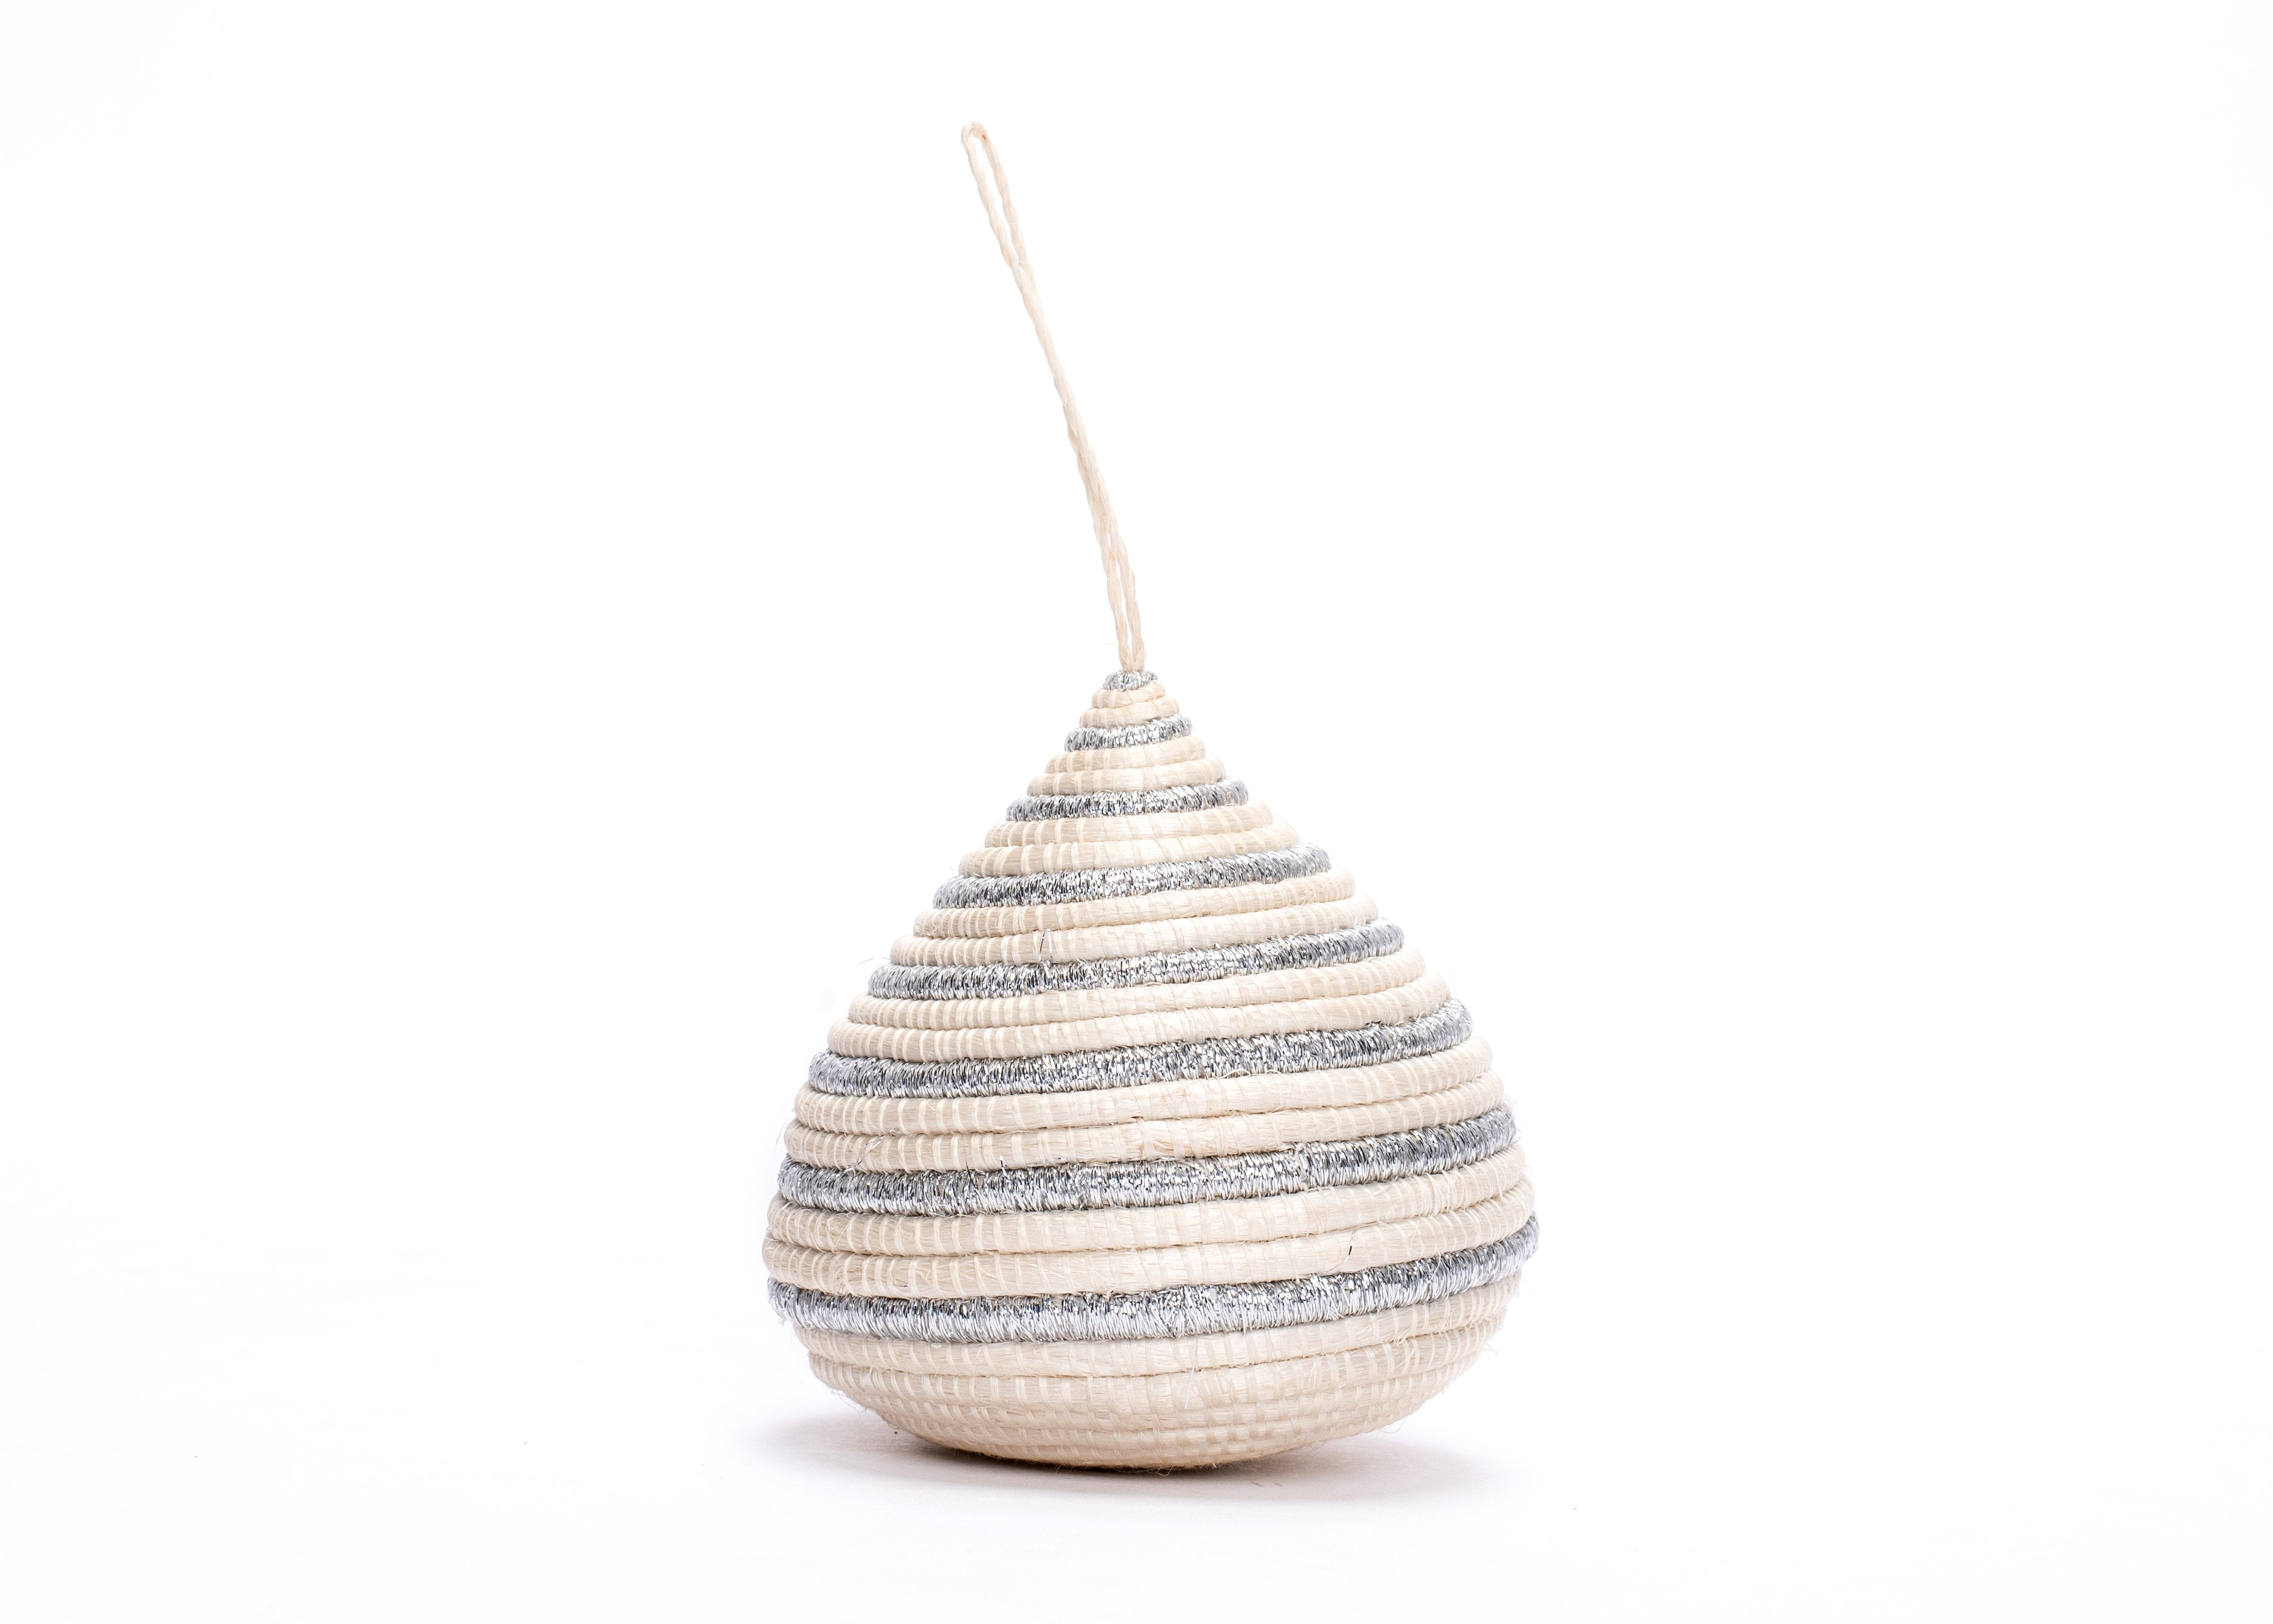 Striped Silver Bulb Ornament - KAZI - Artisan made high quality home decor and wall art